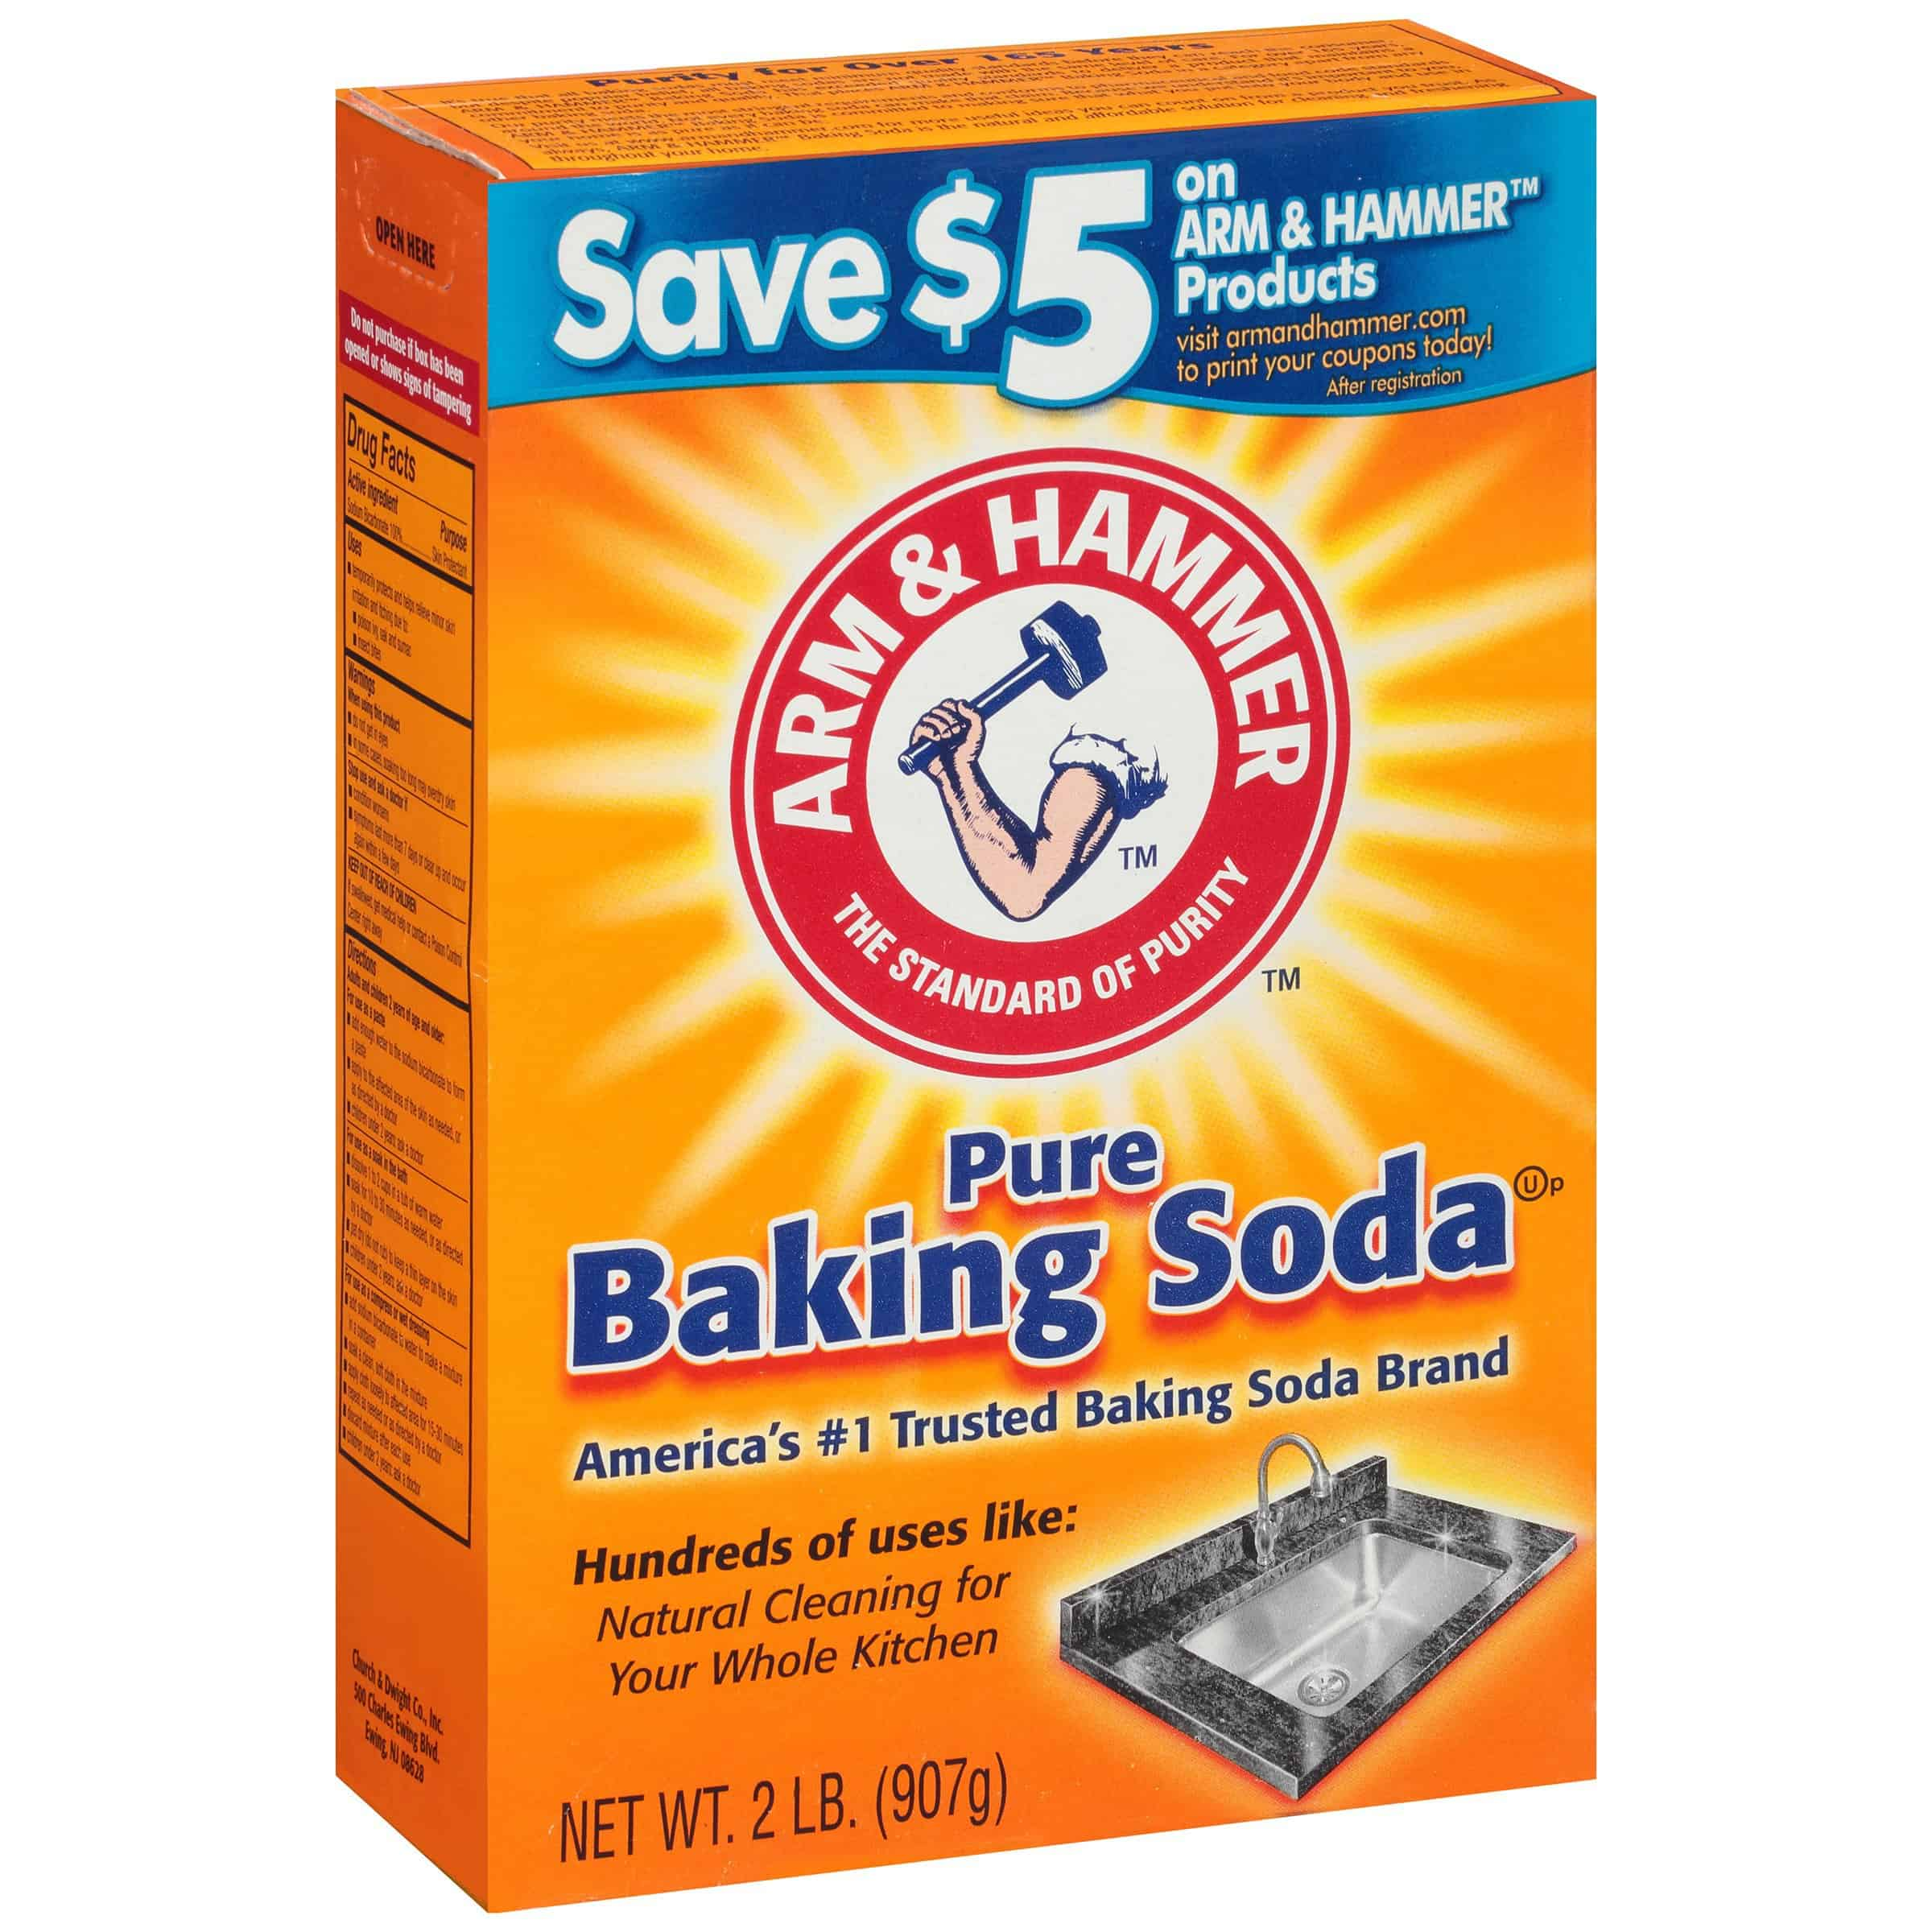 Arm & Hammer Pure Baking Soda, 2 lb - Walmart.com